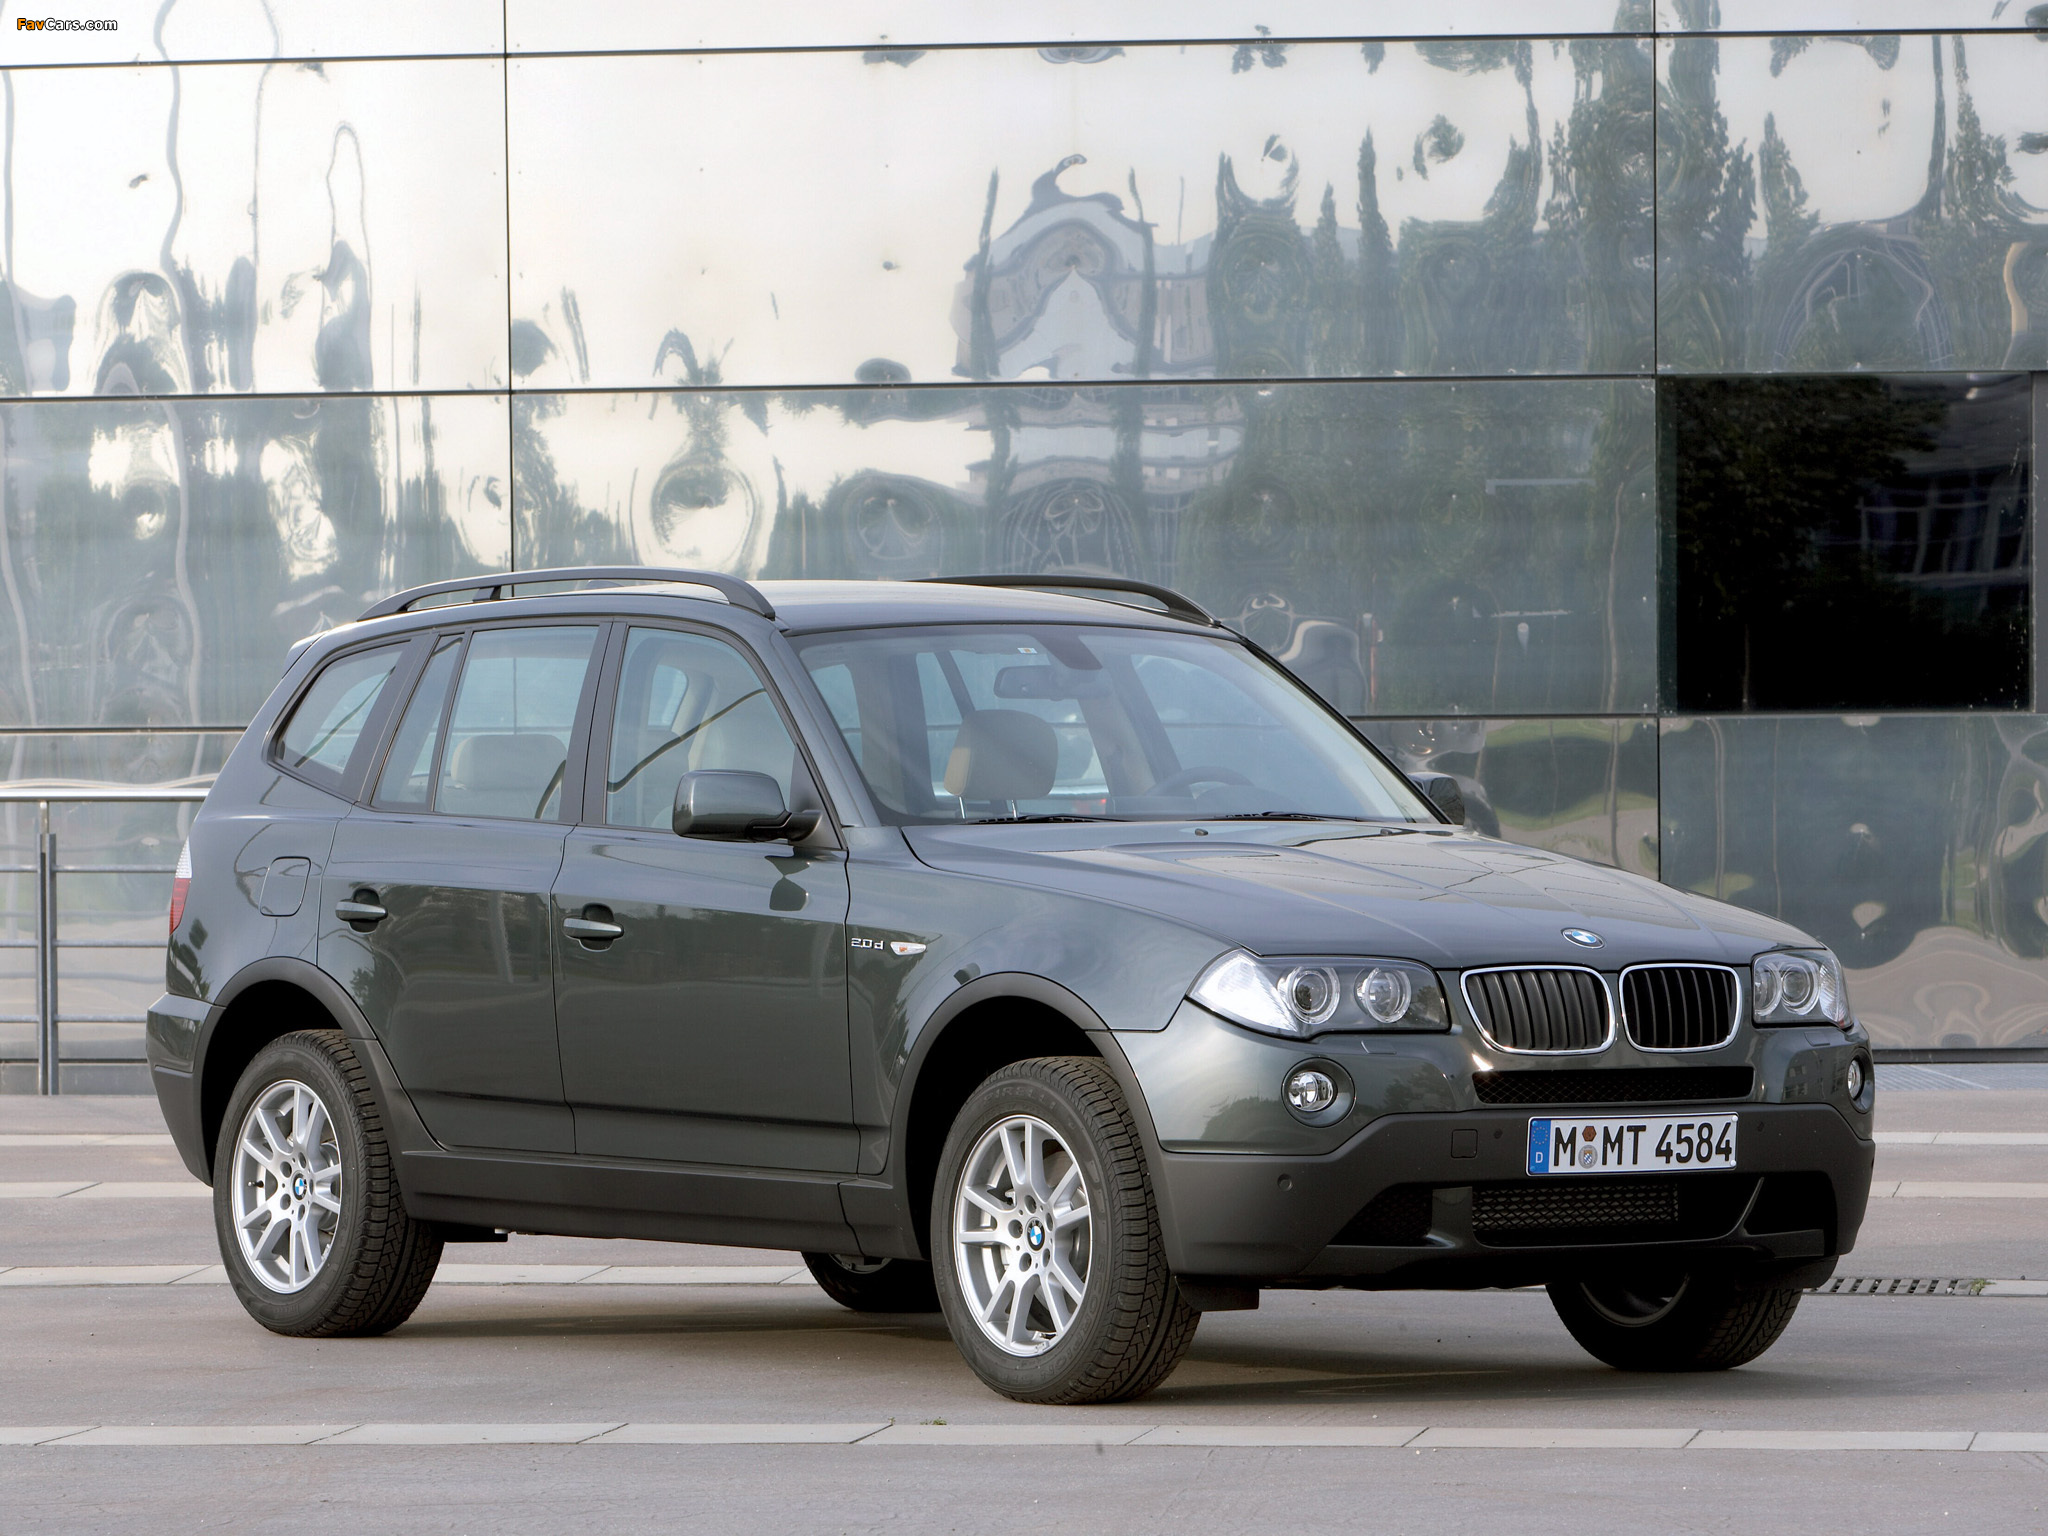 bmw x3 e83 2007 10 images 2048x1536. Black Bedroom Furniture Sets. Home Design Ideas